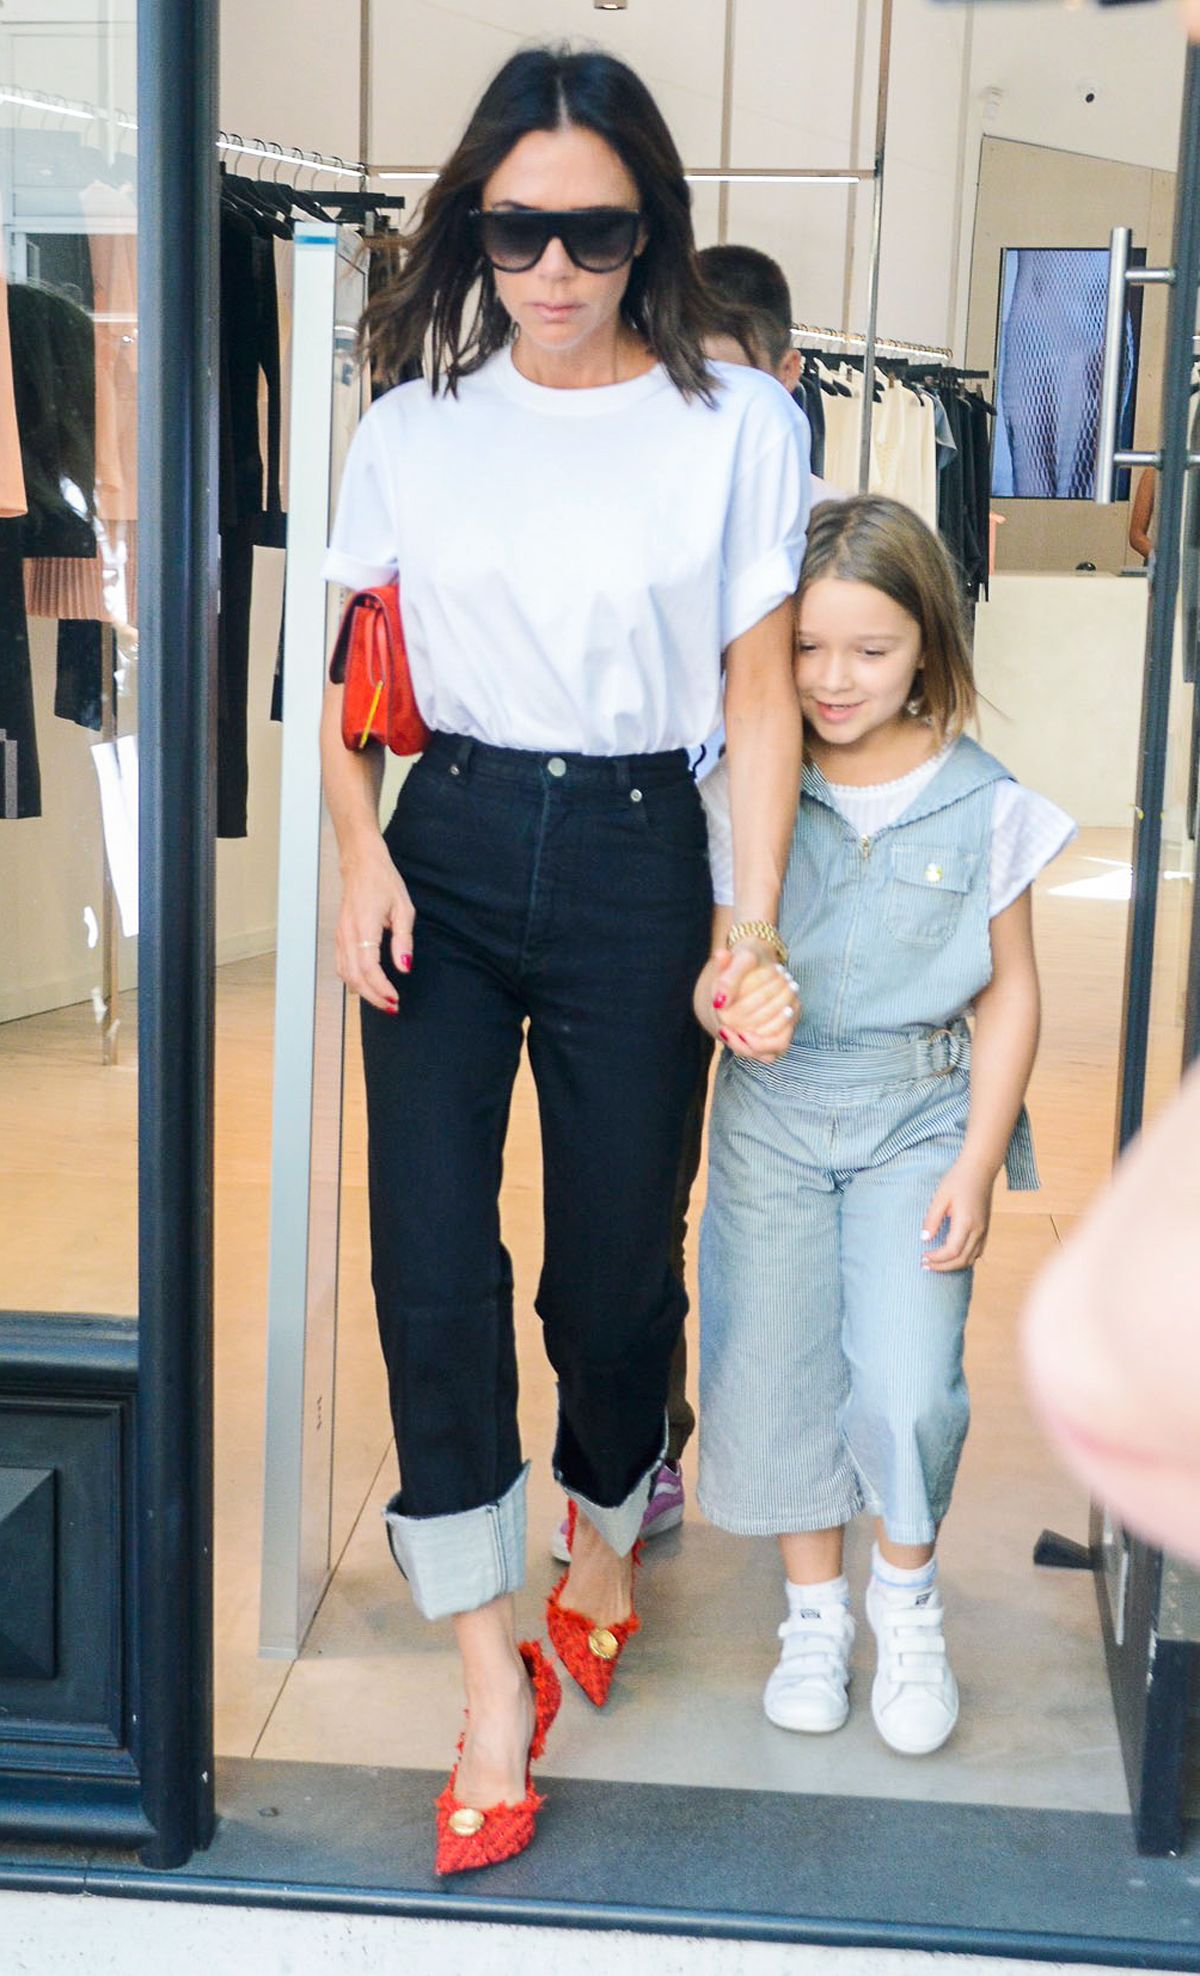 f18c2eb0046 The New Way Victoria Beckham Wears a White Tee and Jeans | WhoWhatWear.com  | Bloglovin'